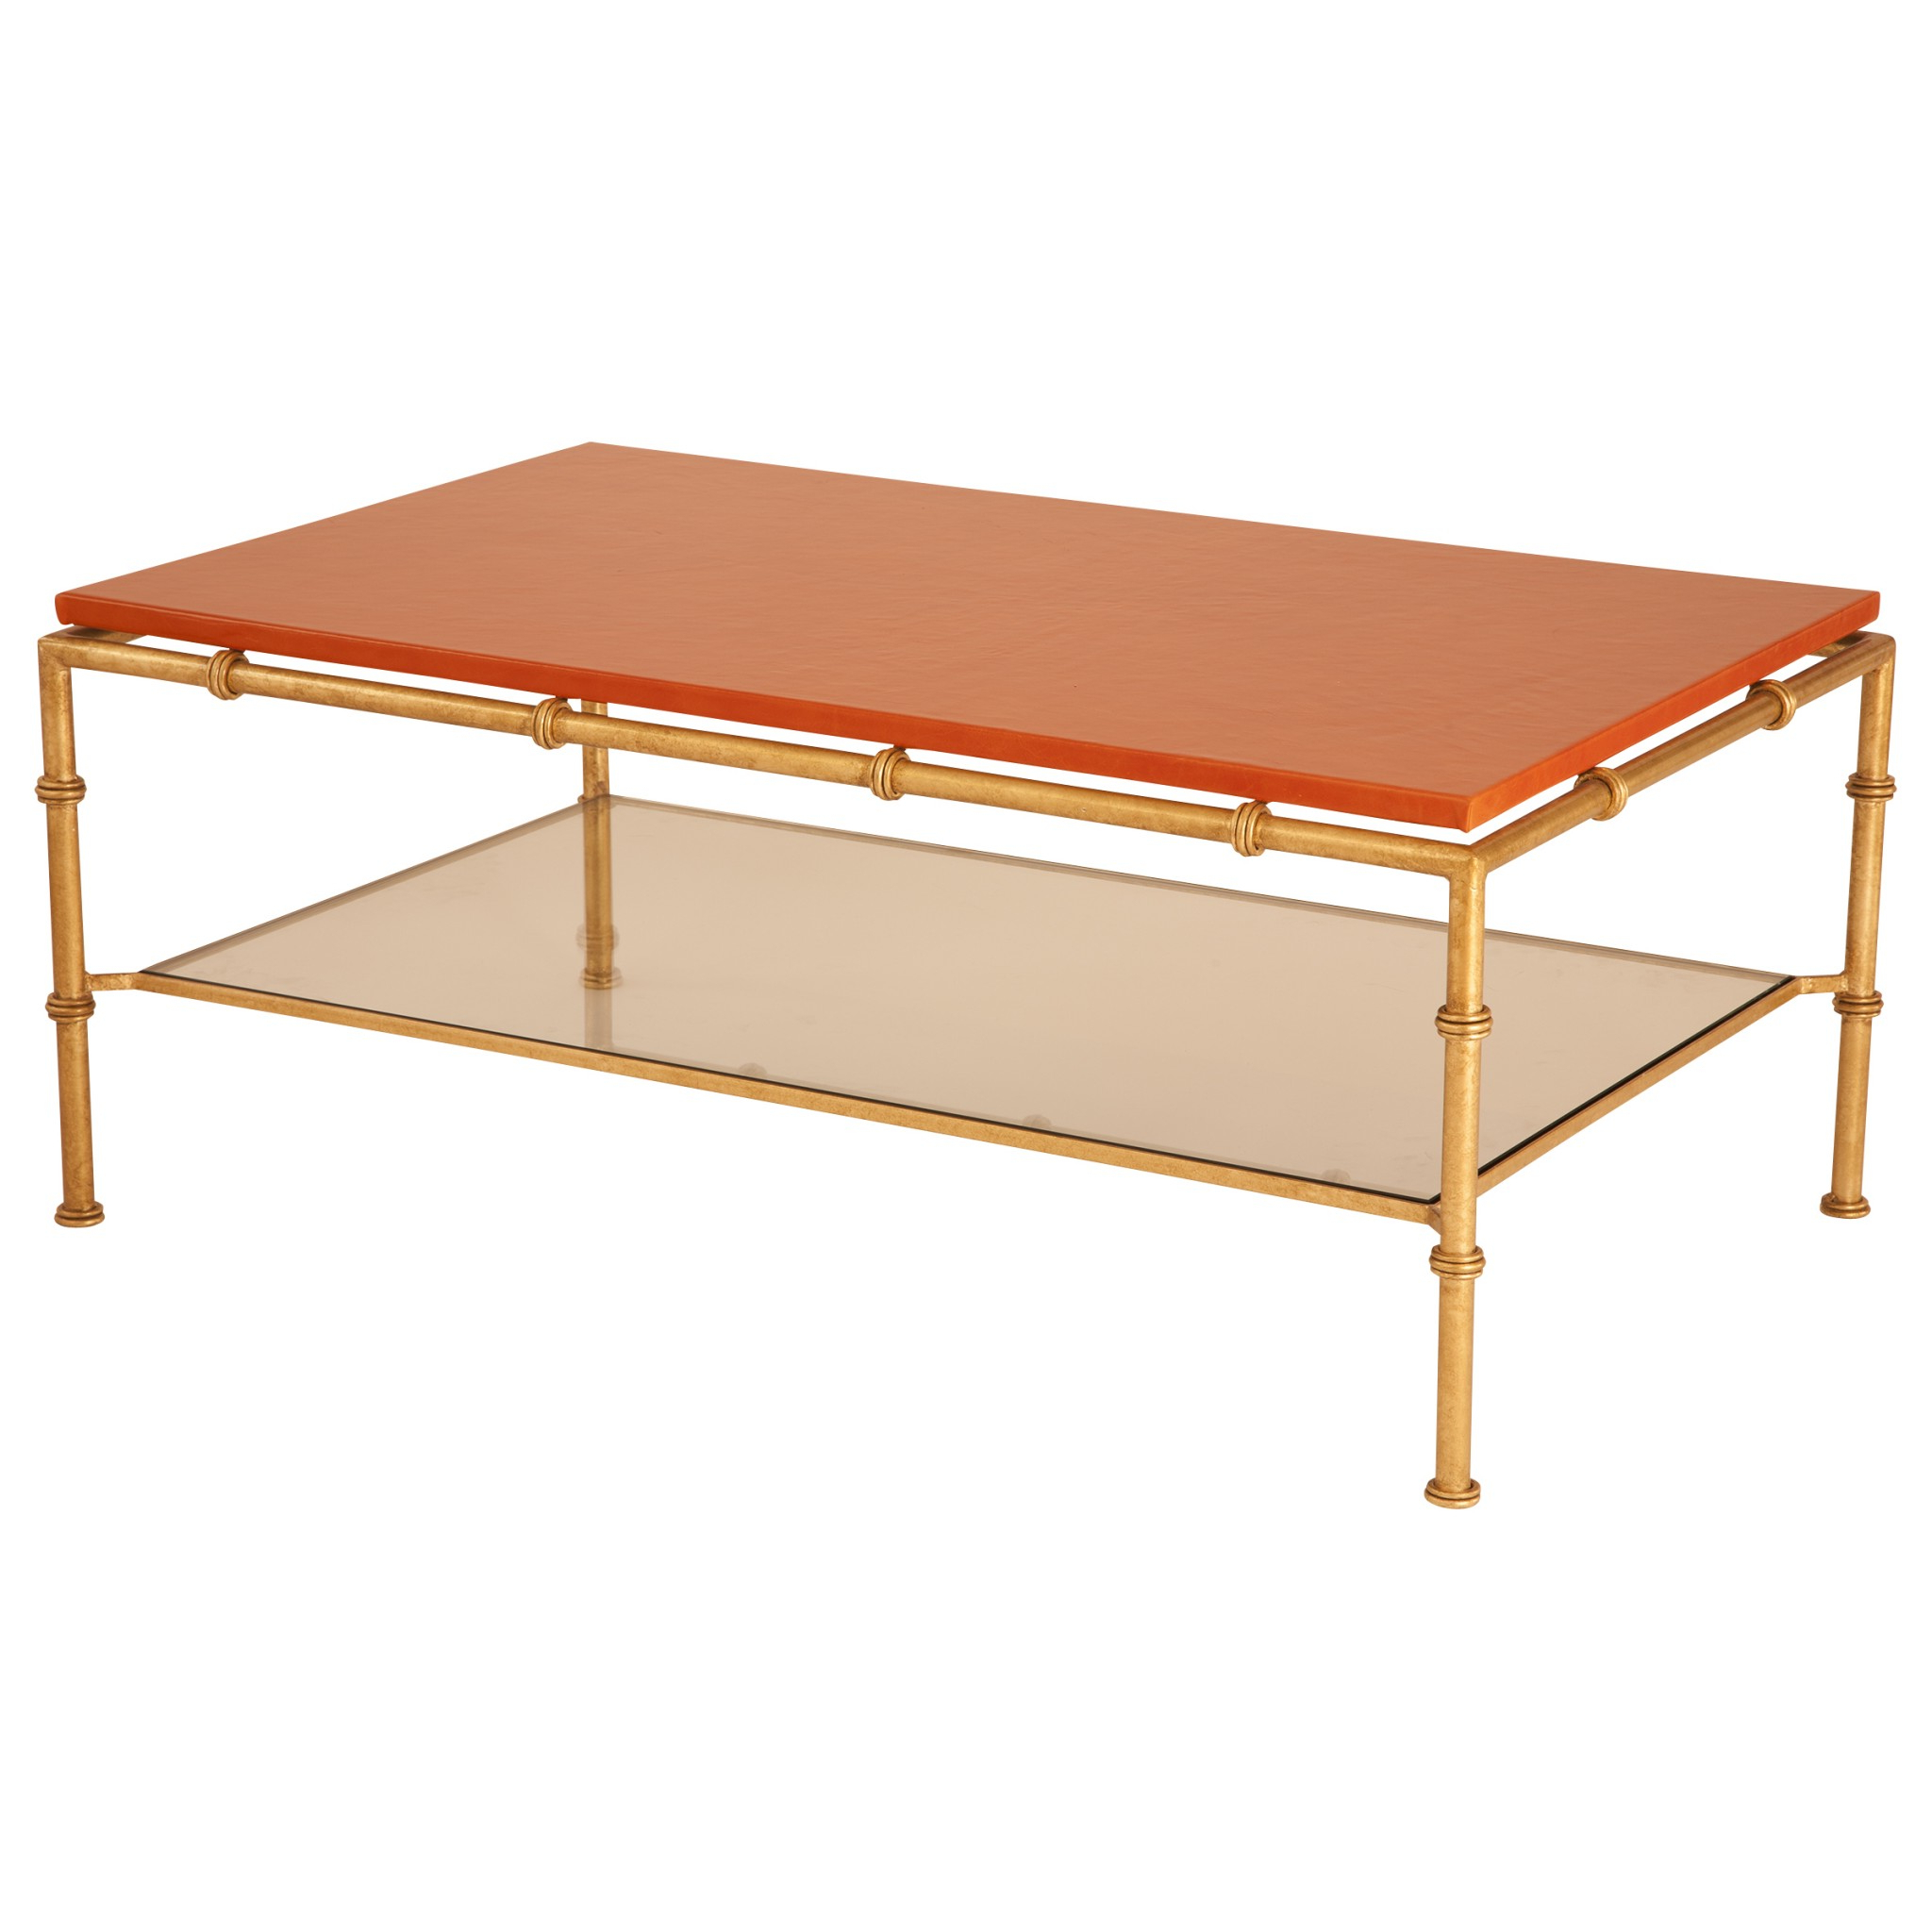 Niermann Weeks Throughout Gold Leaf Collection Coffee Tables (View 13 of 20)